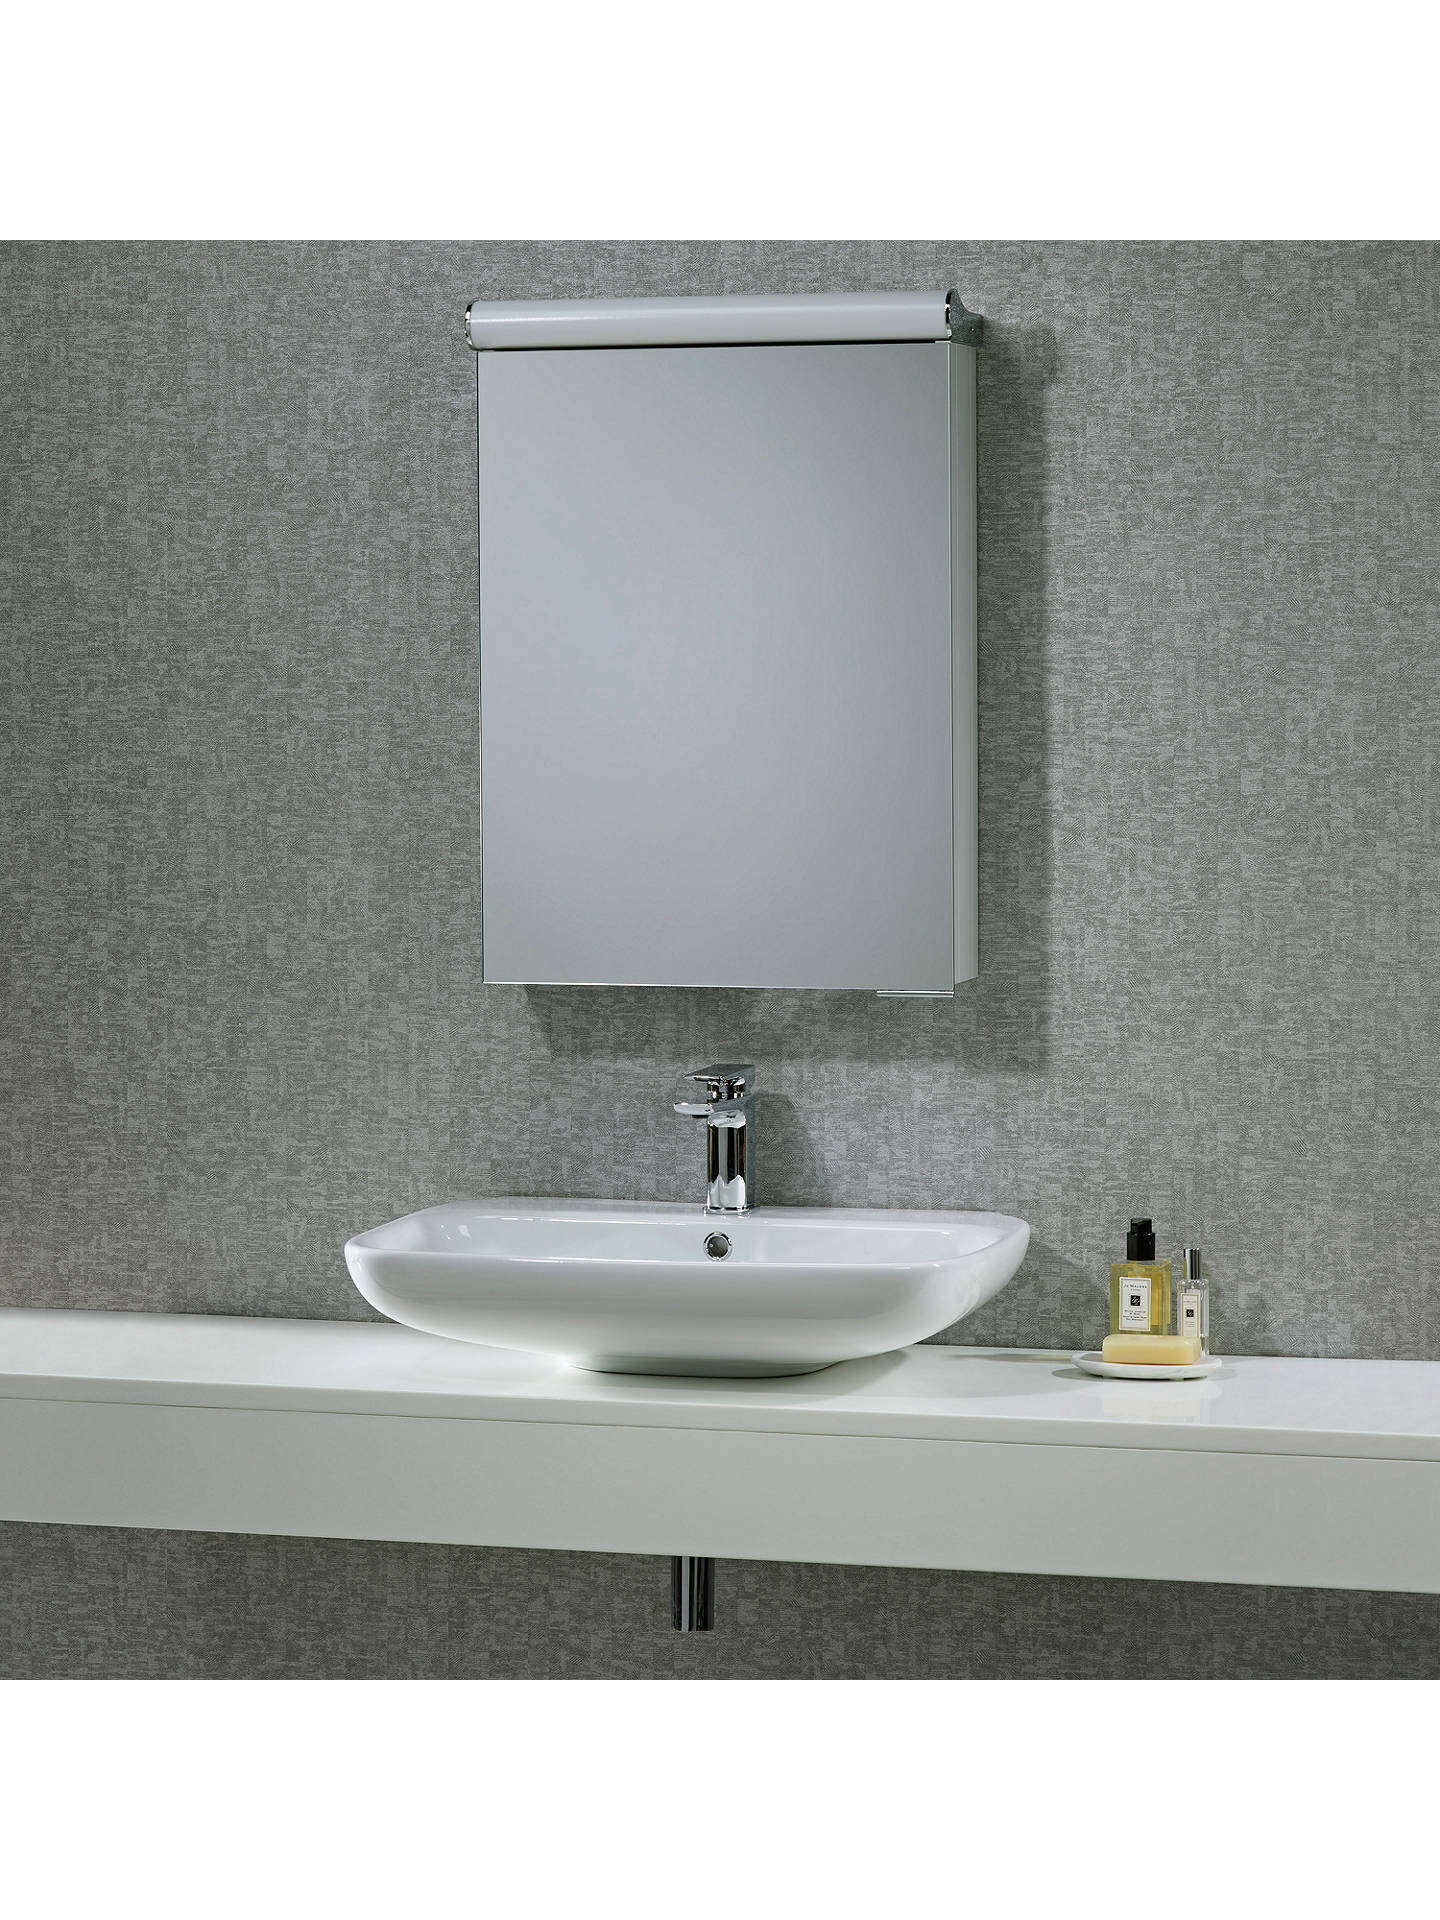 Roper Rhodes Elevate Illuminated Single Bathroom Cabinet With Double Sided Mirror Online At Johnlewis